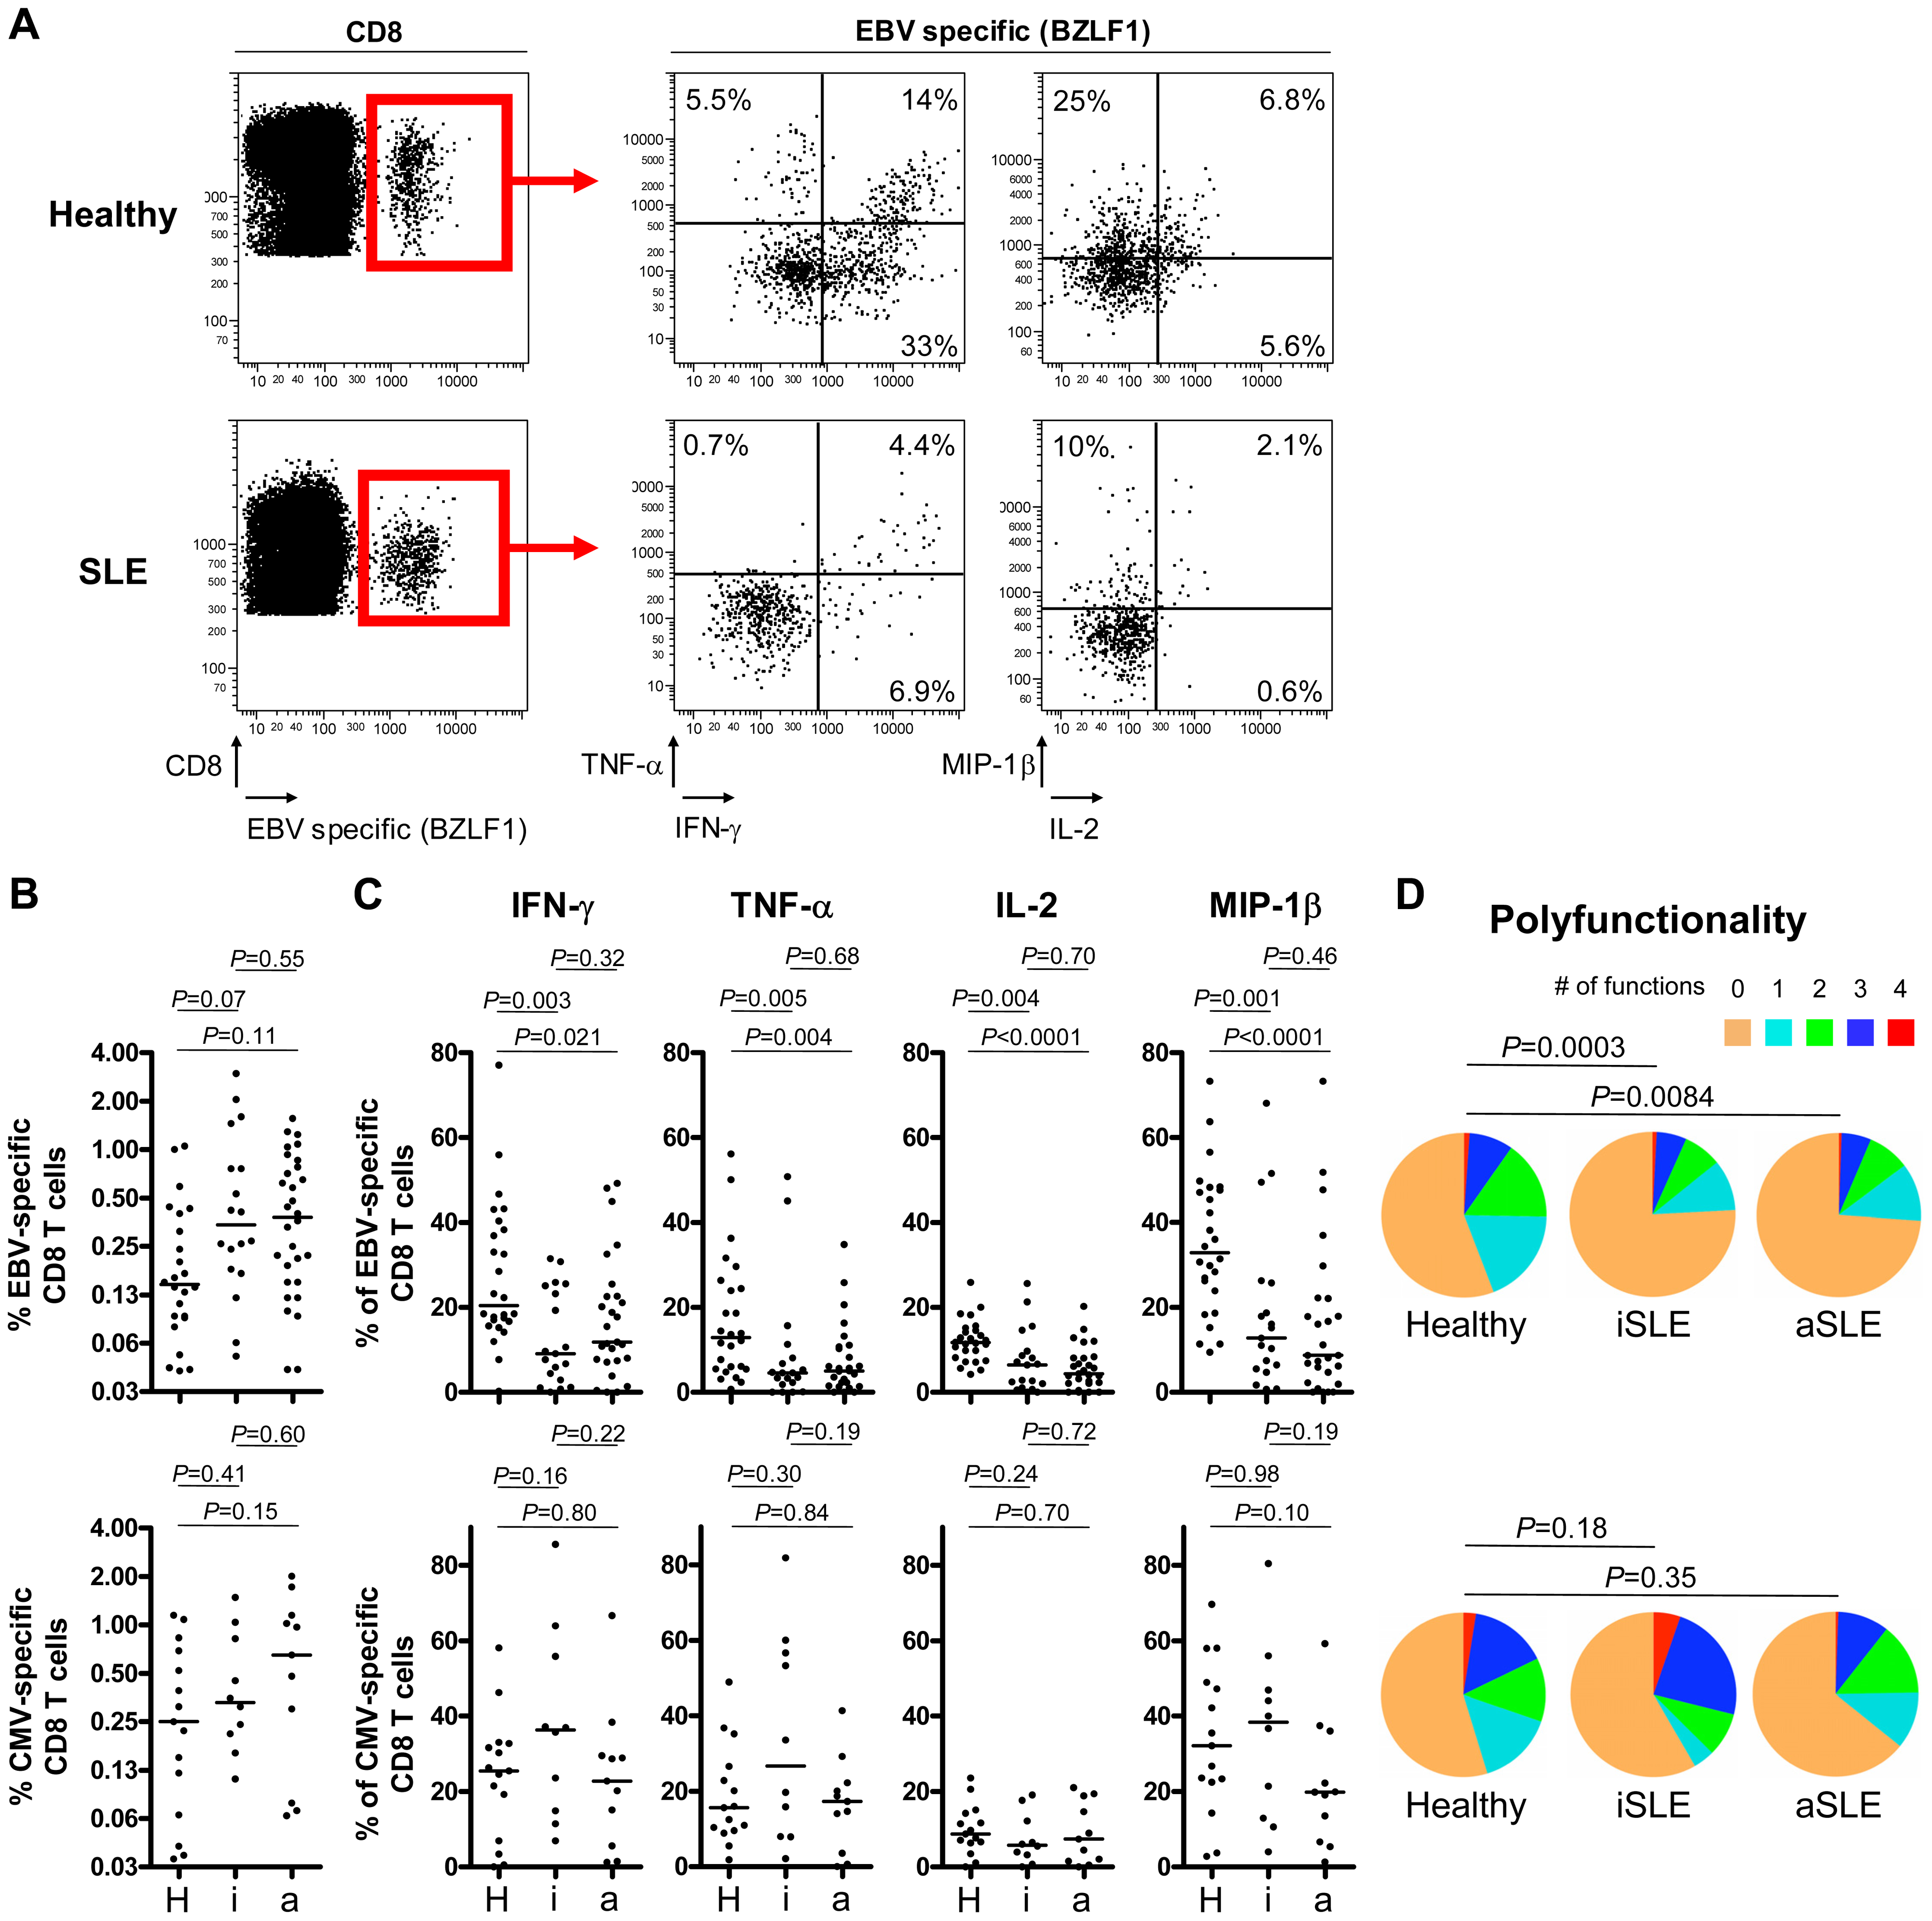 Multiparametric functional assessment of EBV- and CMV-specific CD8<sup>+</sup> T cells in SLE patients.